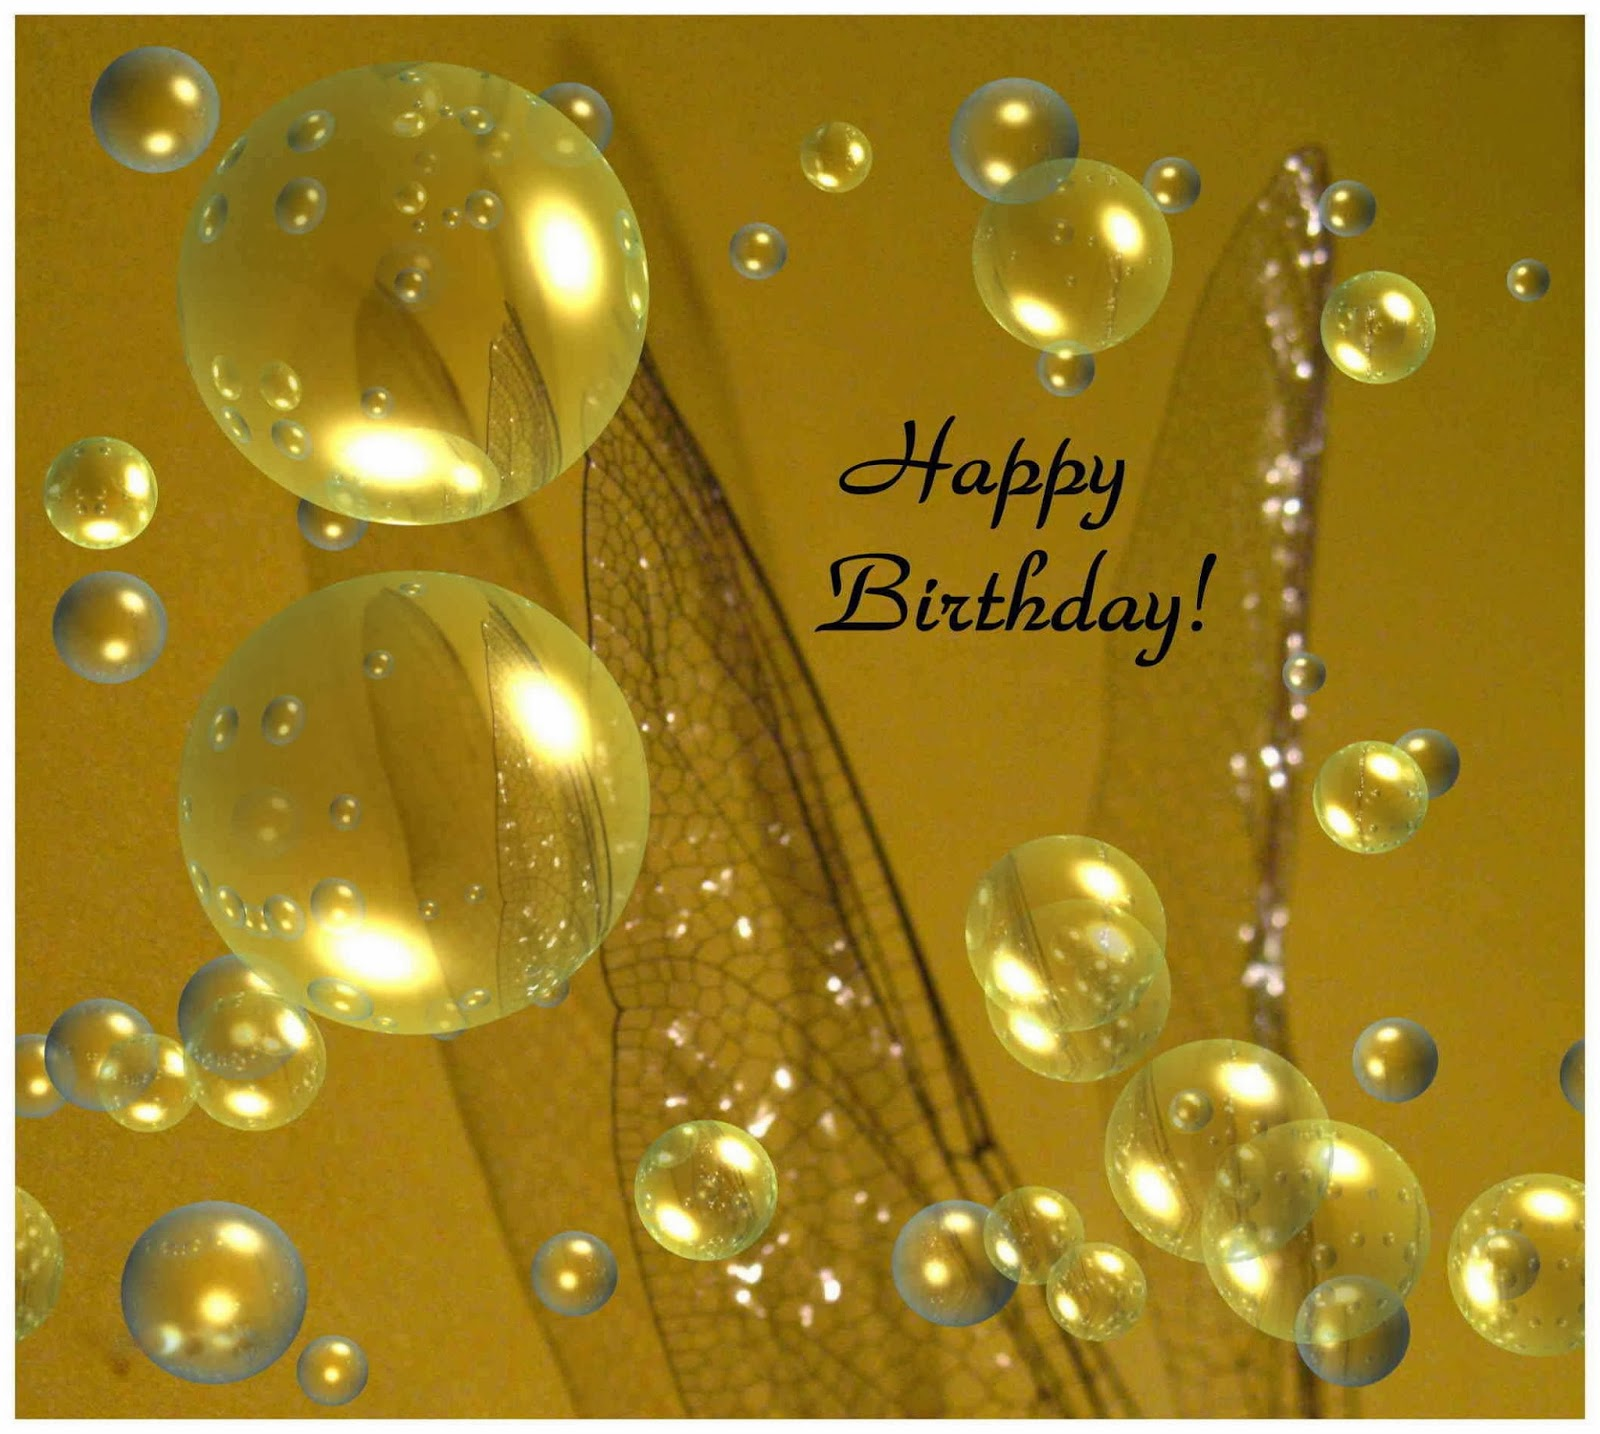 Birthday Wallpapers HD Free Download